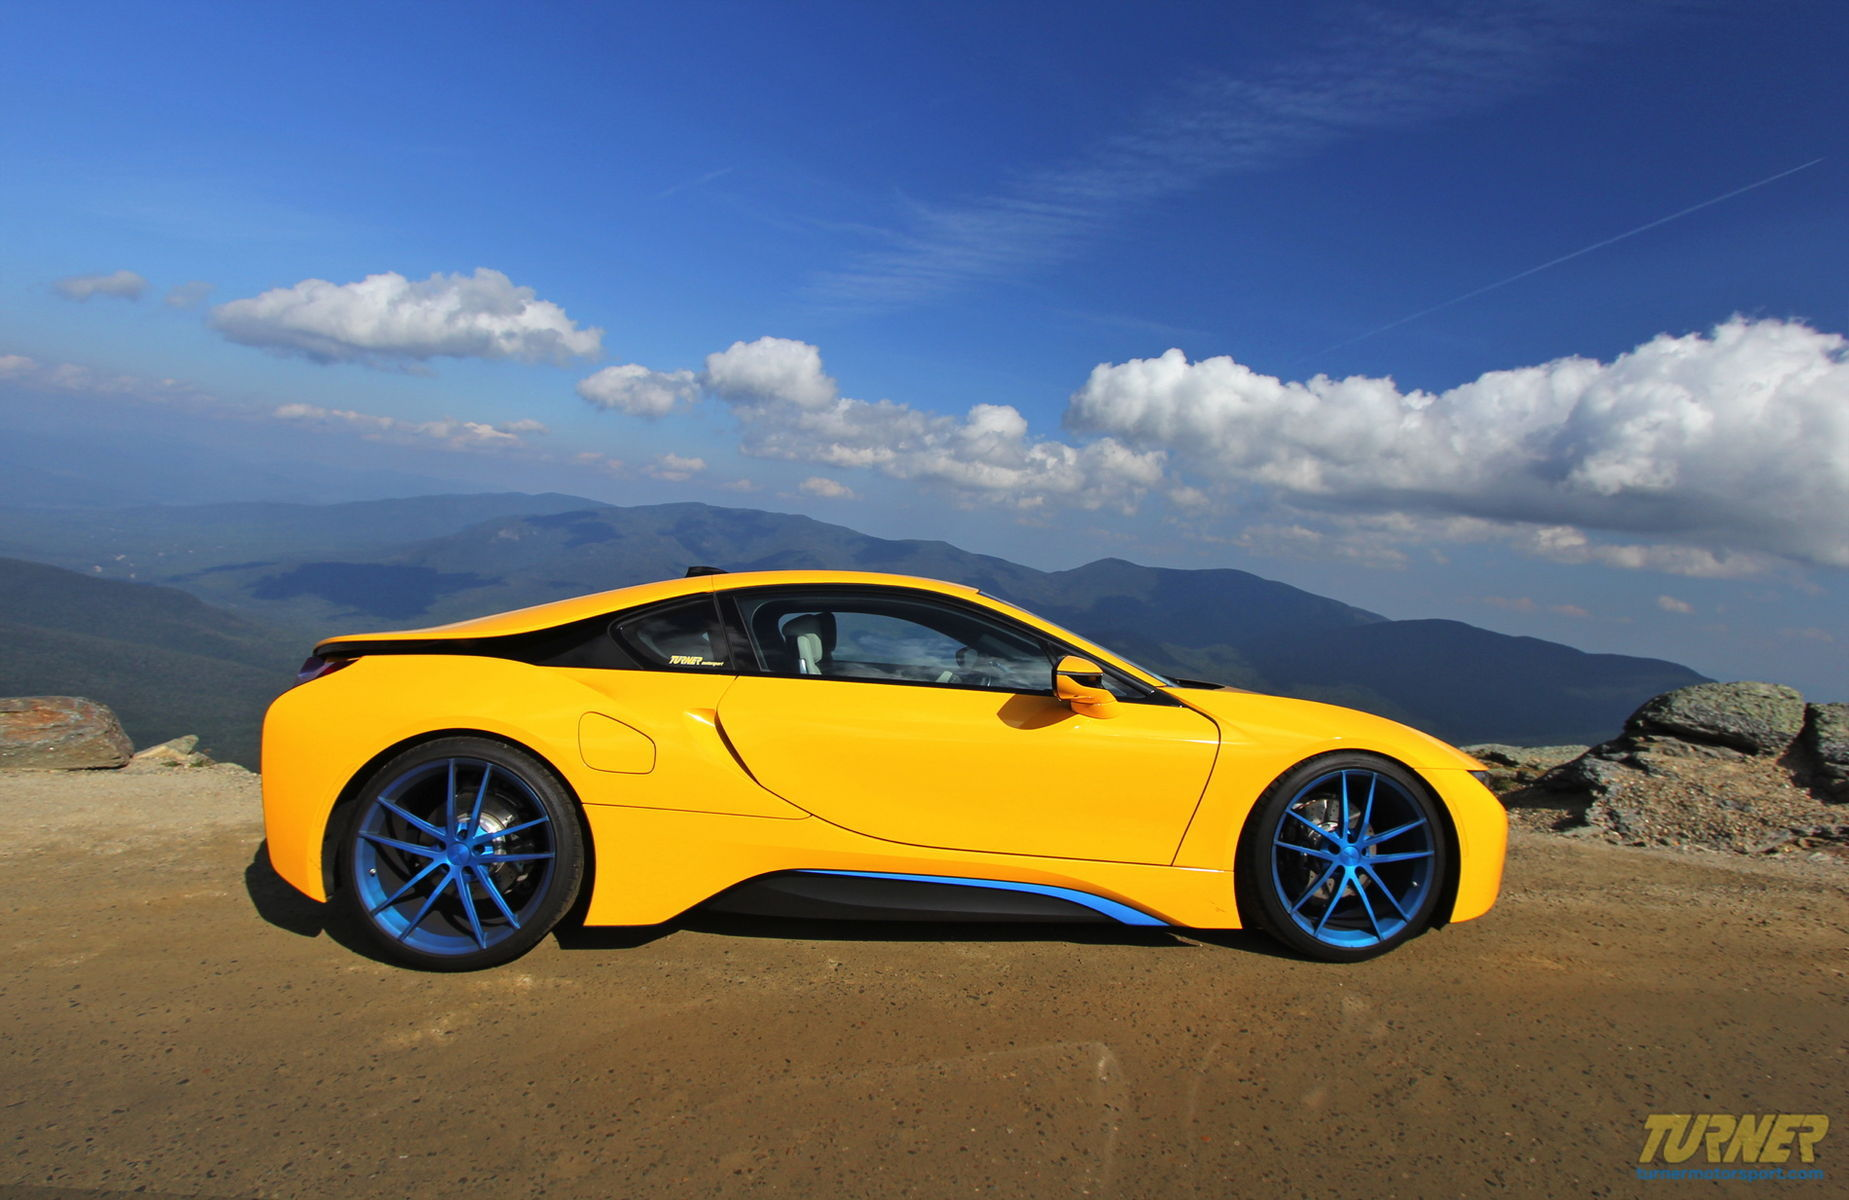 2015 BMW i8 | Turner Motorsports i8 on Forgeline AR1 Wheels